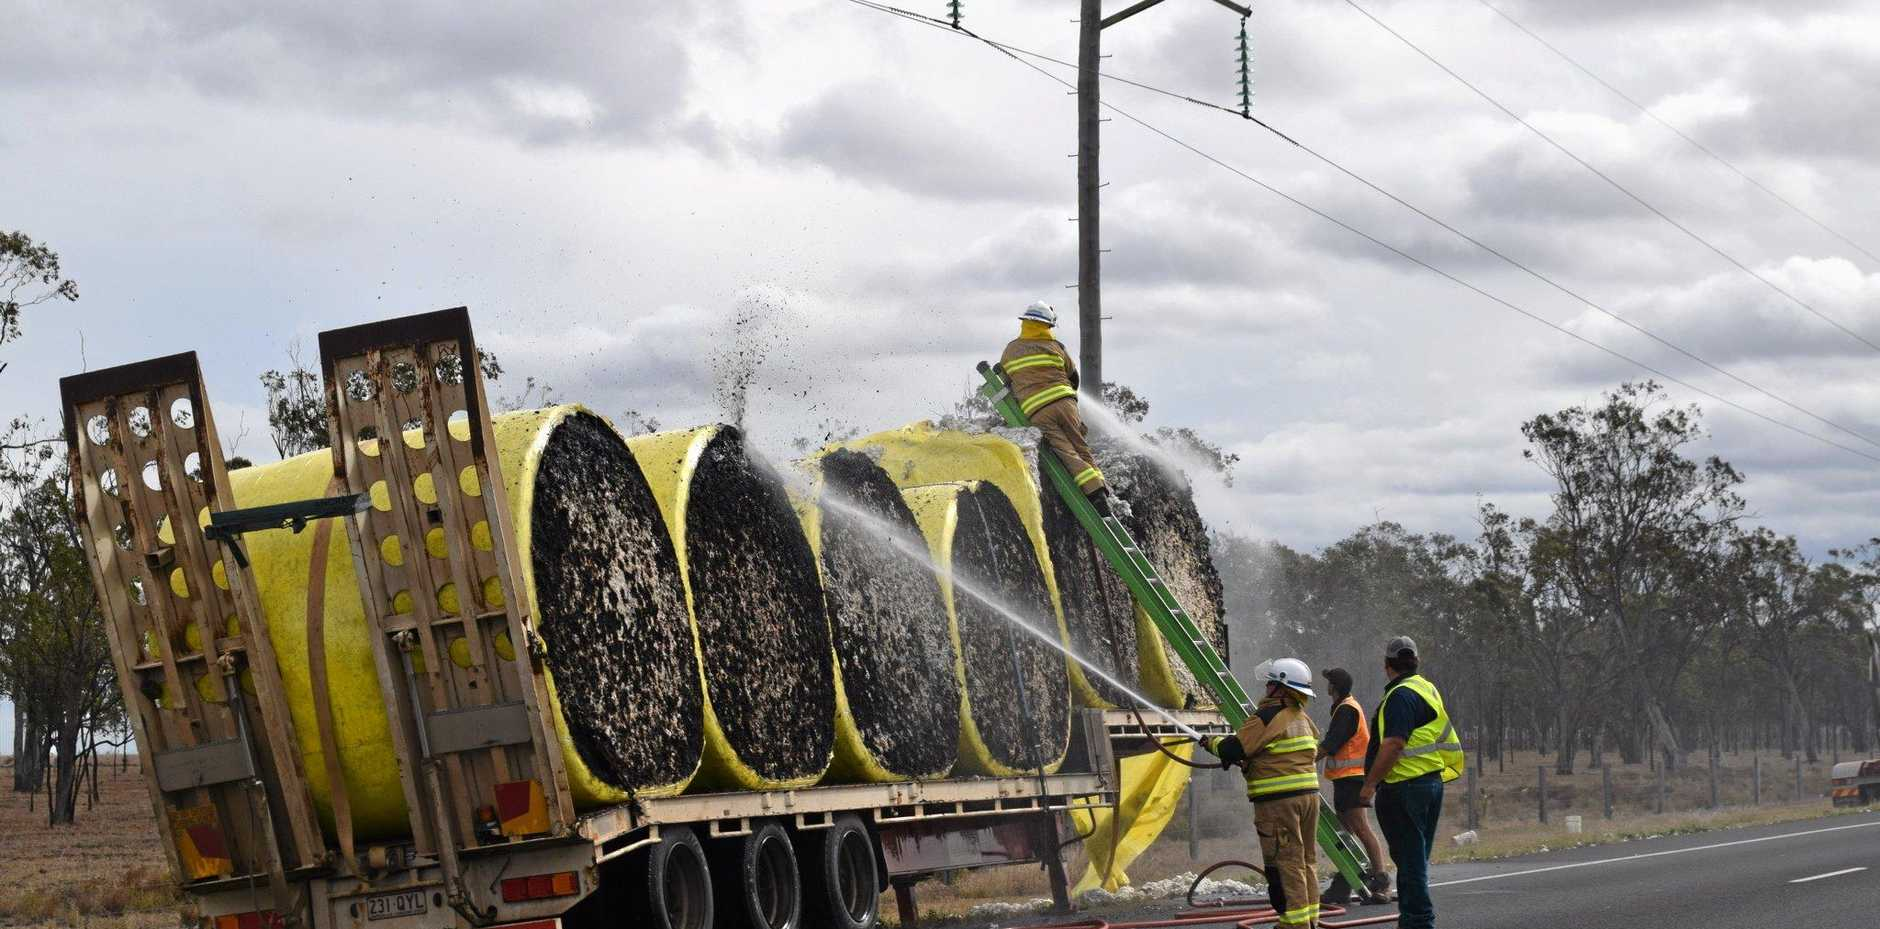 TRUCK FIRE: A truck travelling to the cotton gin caught fire on the Warrego Highway at around 12.50 on Monday.